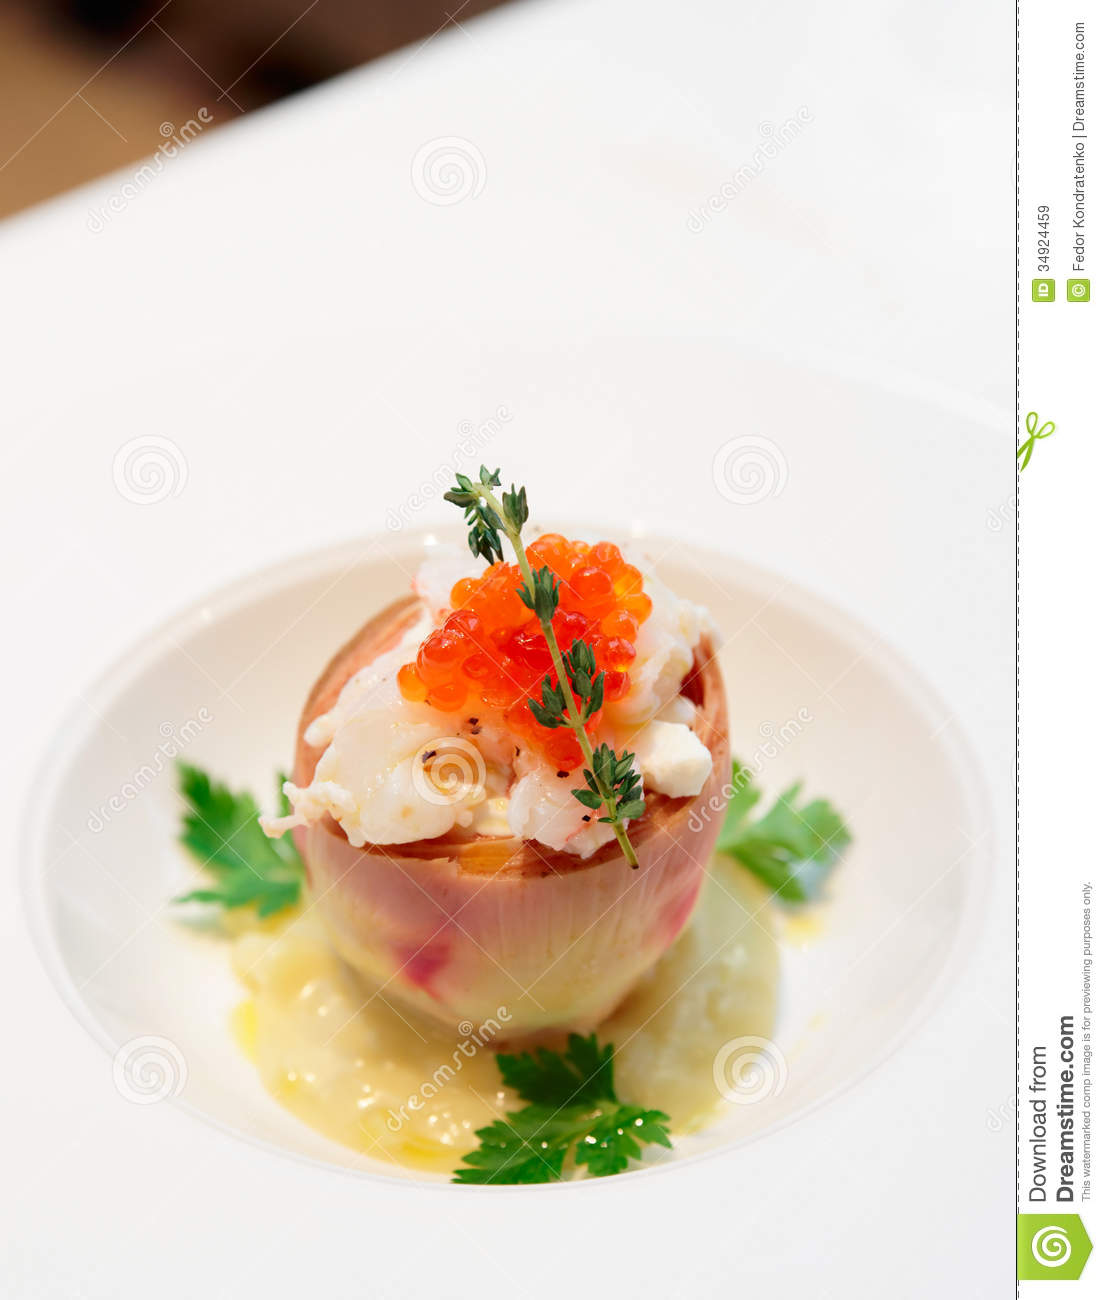 ... , Seafood, And Salmon Roe Royalty Free Stock Images - Image: 34924459